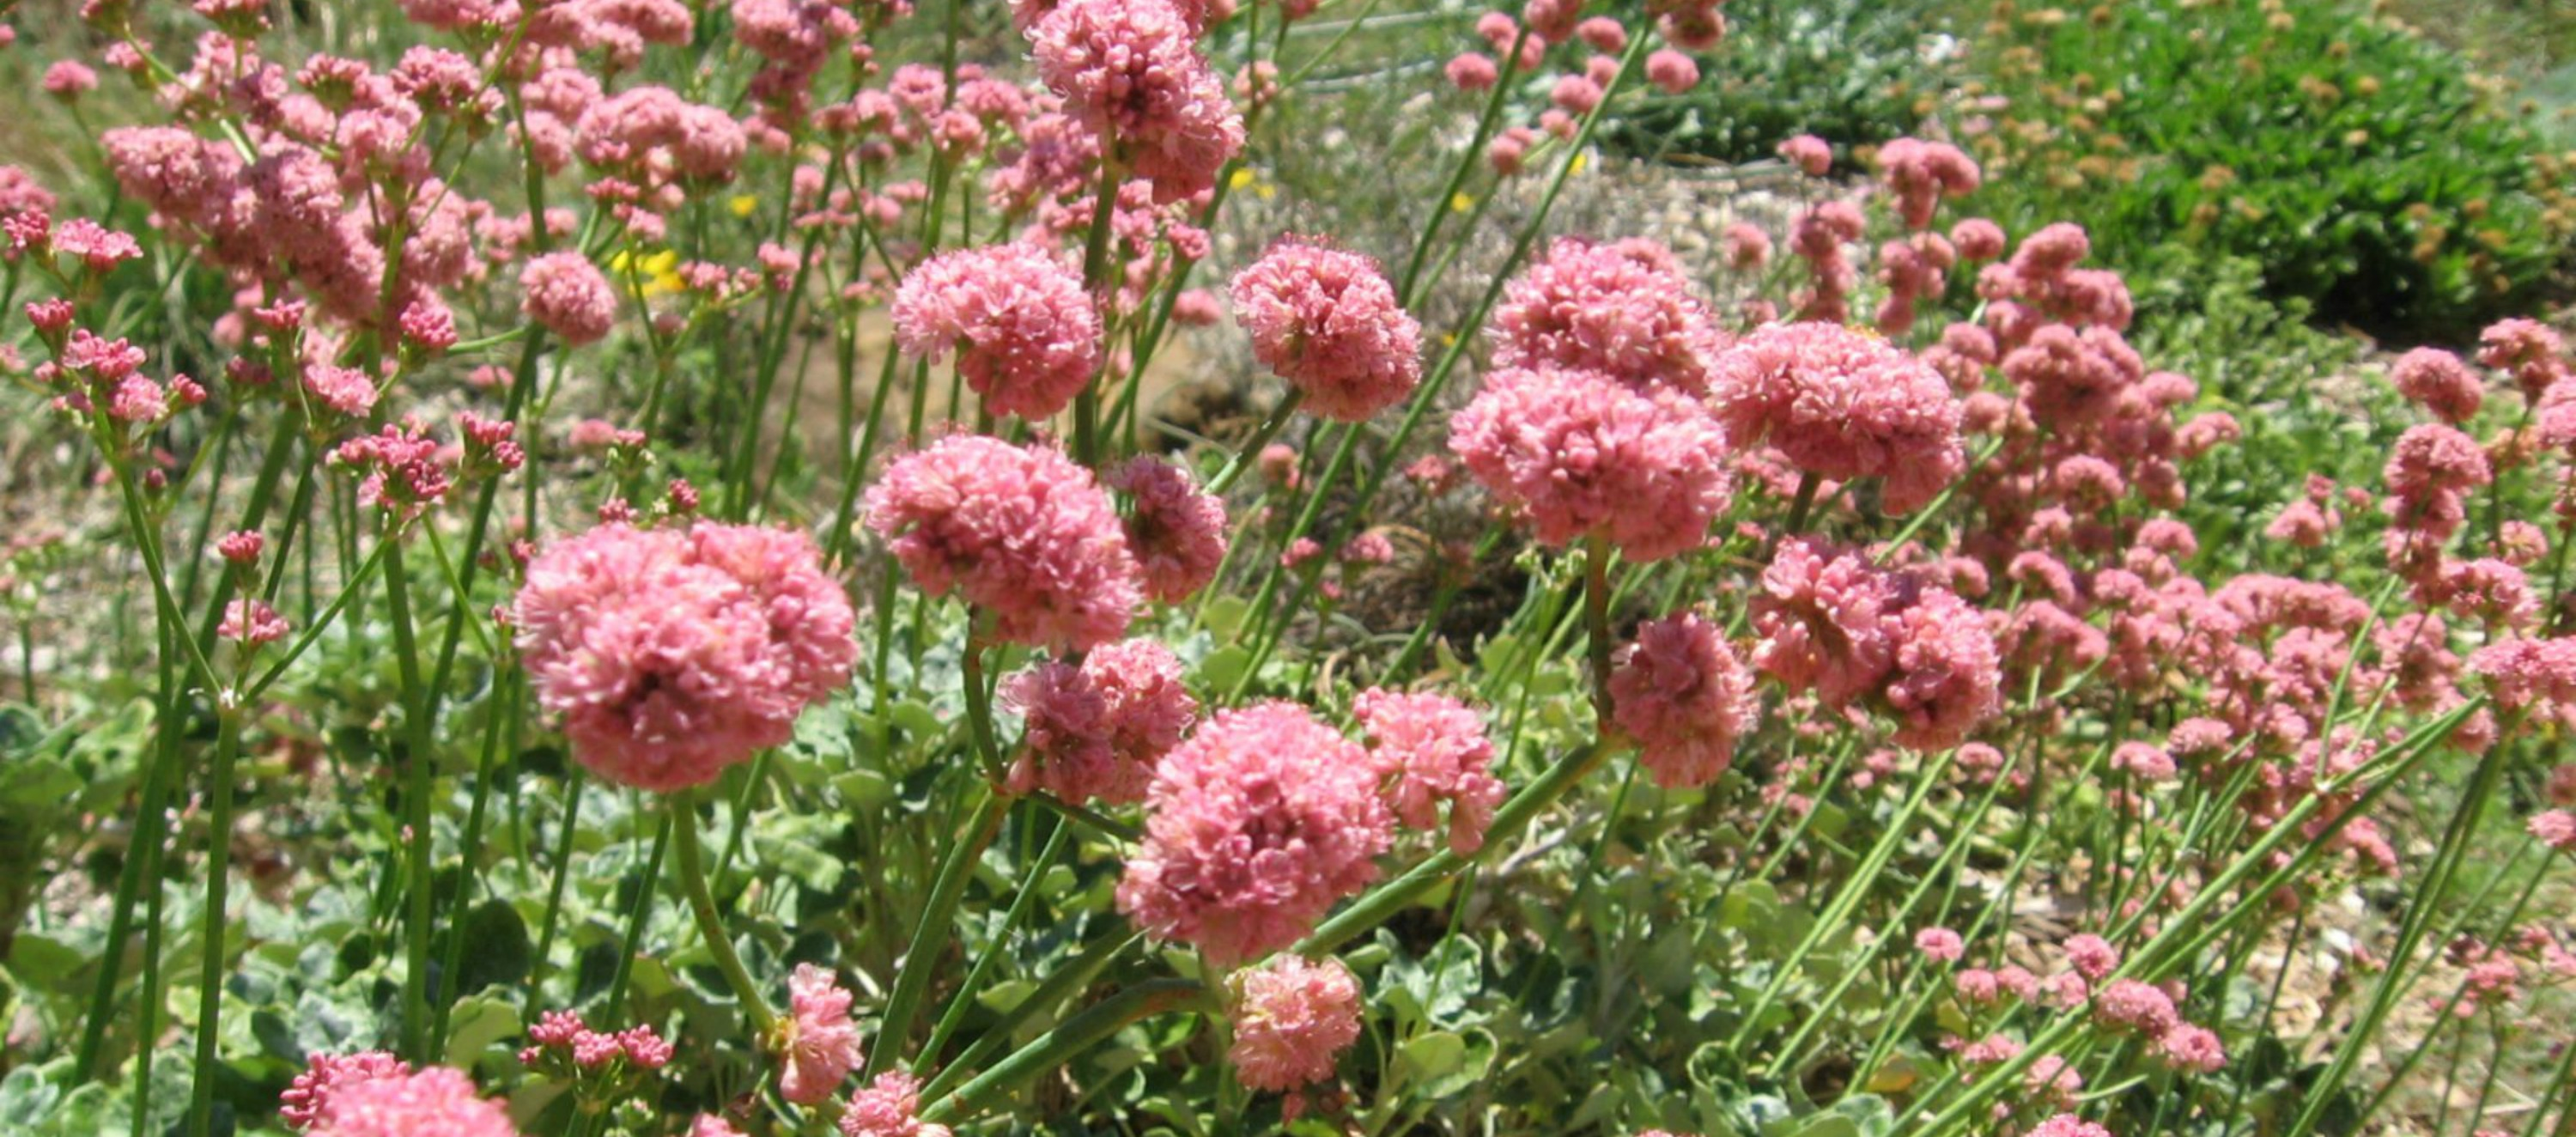 red buckwheat E rubescens Anne of Green Gardens